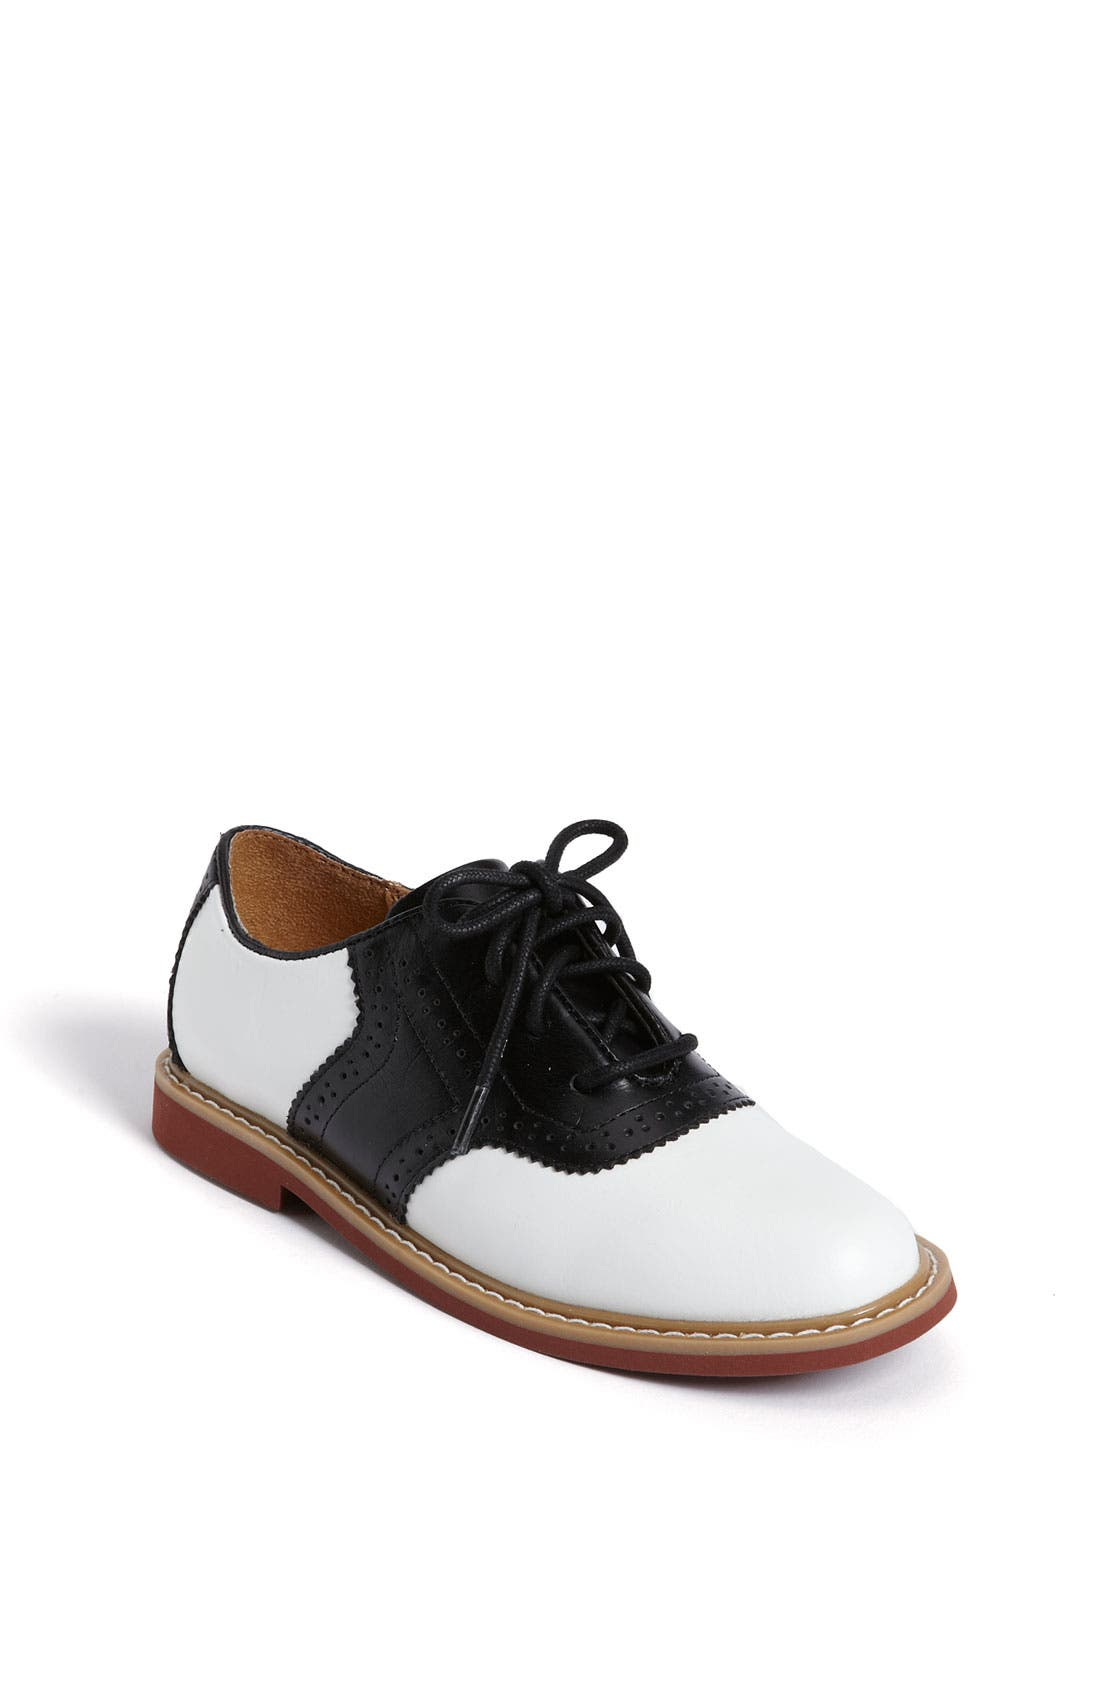 Alternate Image 1 Selected - Cole Haan 'Air Franklin' Saddle Shoes (Toddler, Little Kid & Big Kid)